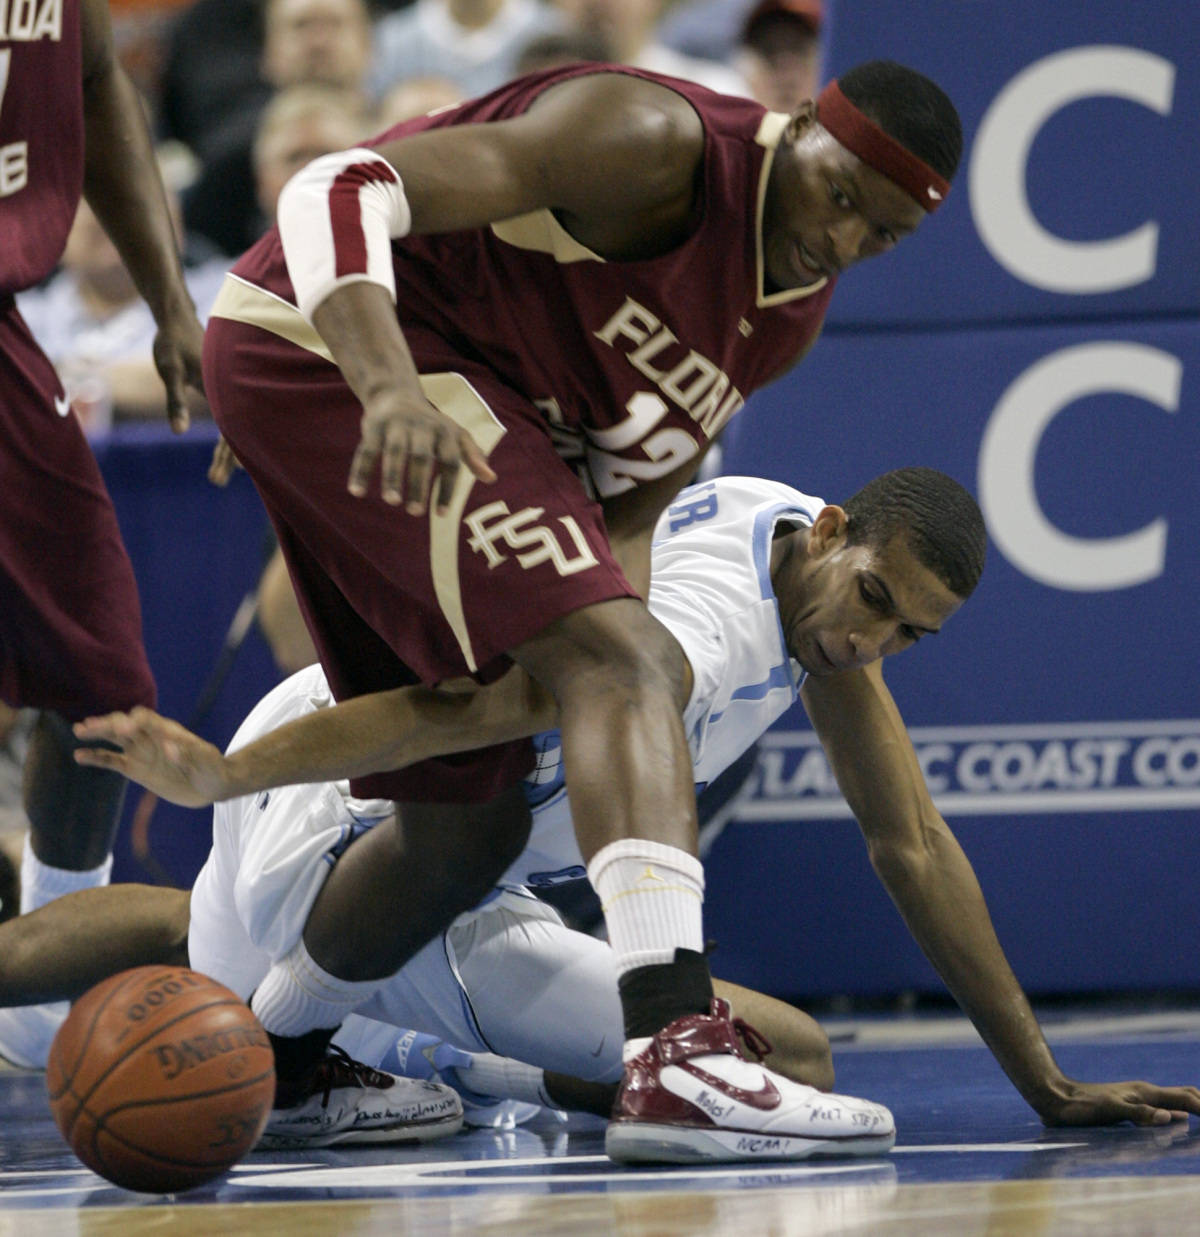 North Carolina's Brandan Wright, right, reaches for a loose ball between the legs of Florida State's Al Thornton (12) during a second round game of the Men's Atlantic Coast Conference basketball tournament in Tampa, Fla., Friday, March 9, 2007. (AP Photo/John Raoux)